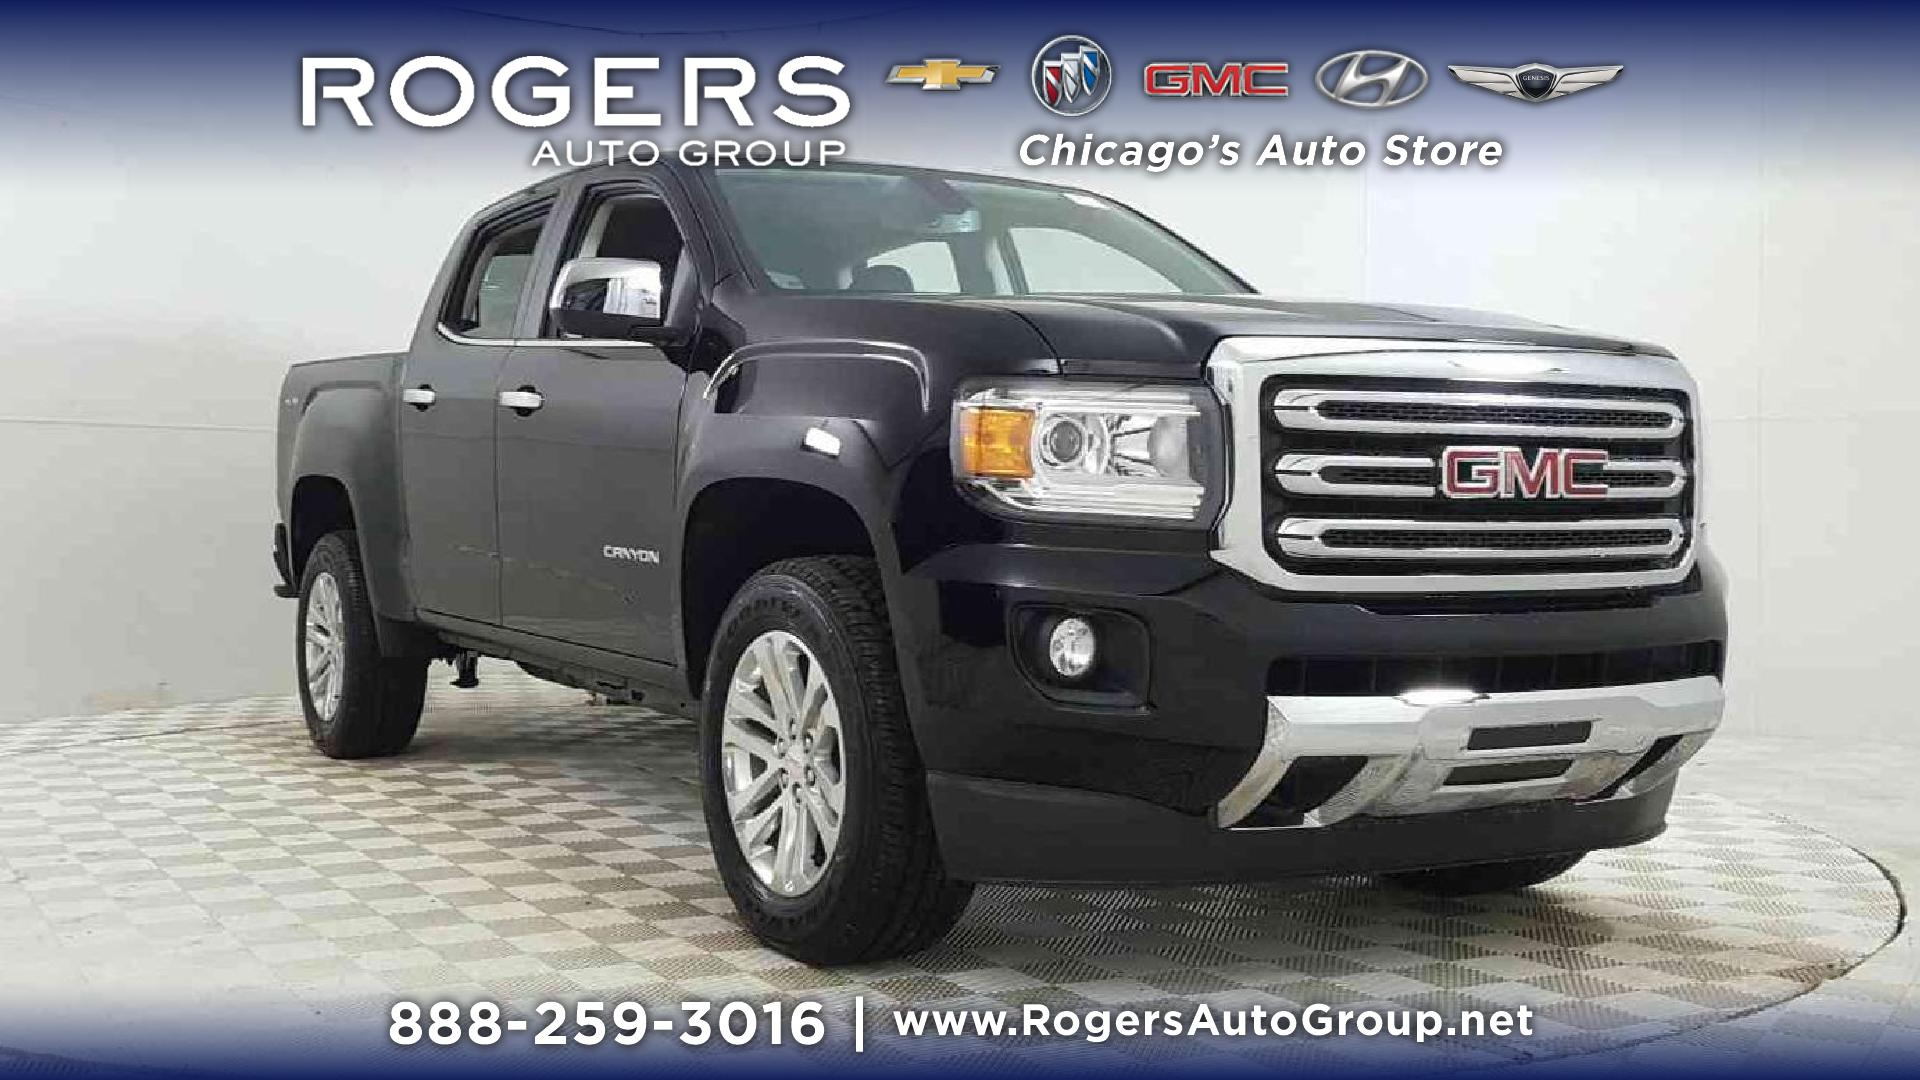 Chicago New 2019 Gmc Canyon Vehicles For Sale 888 Vehicle Photo In Il 60616